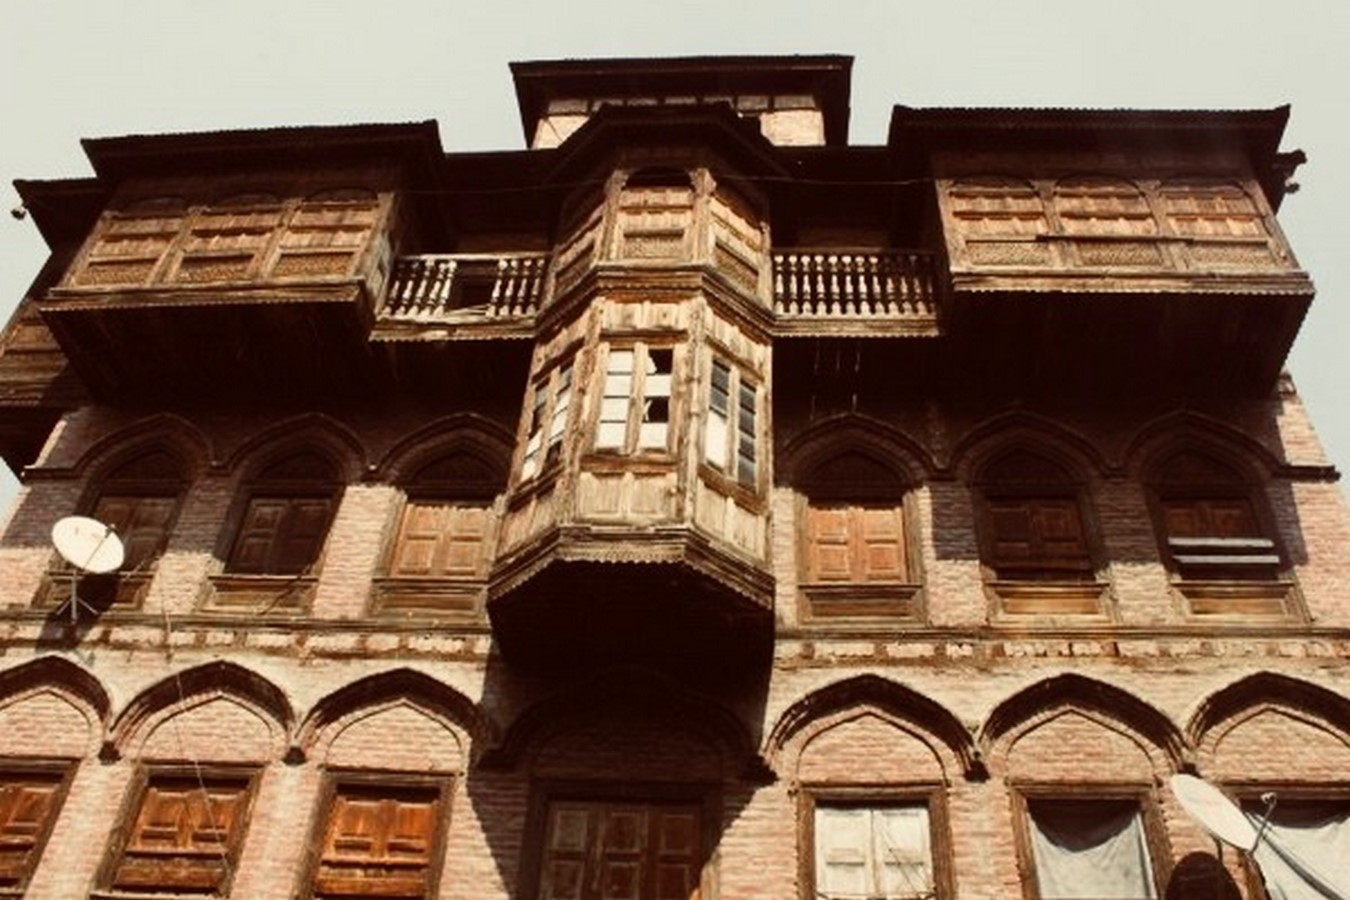 Architecture of Kashmir- Beauty amidst chaos - Sheet2